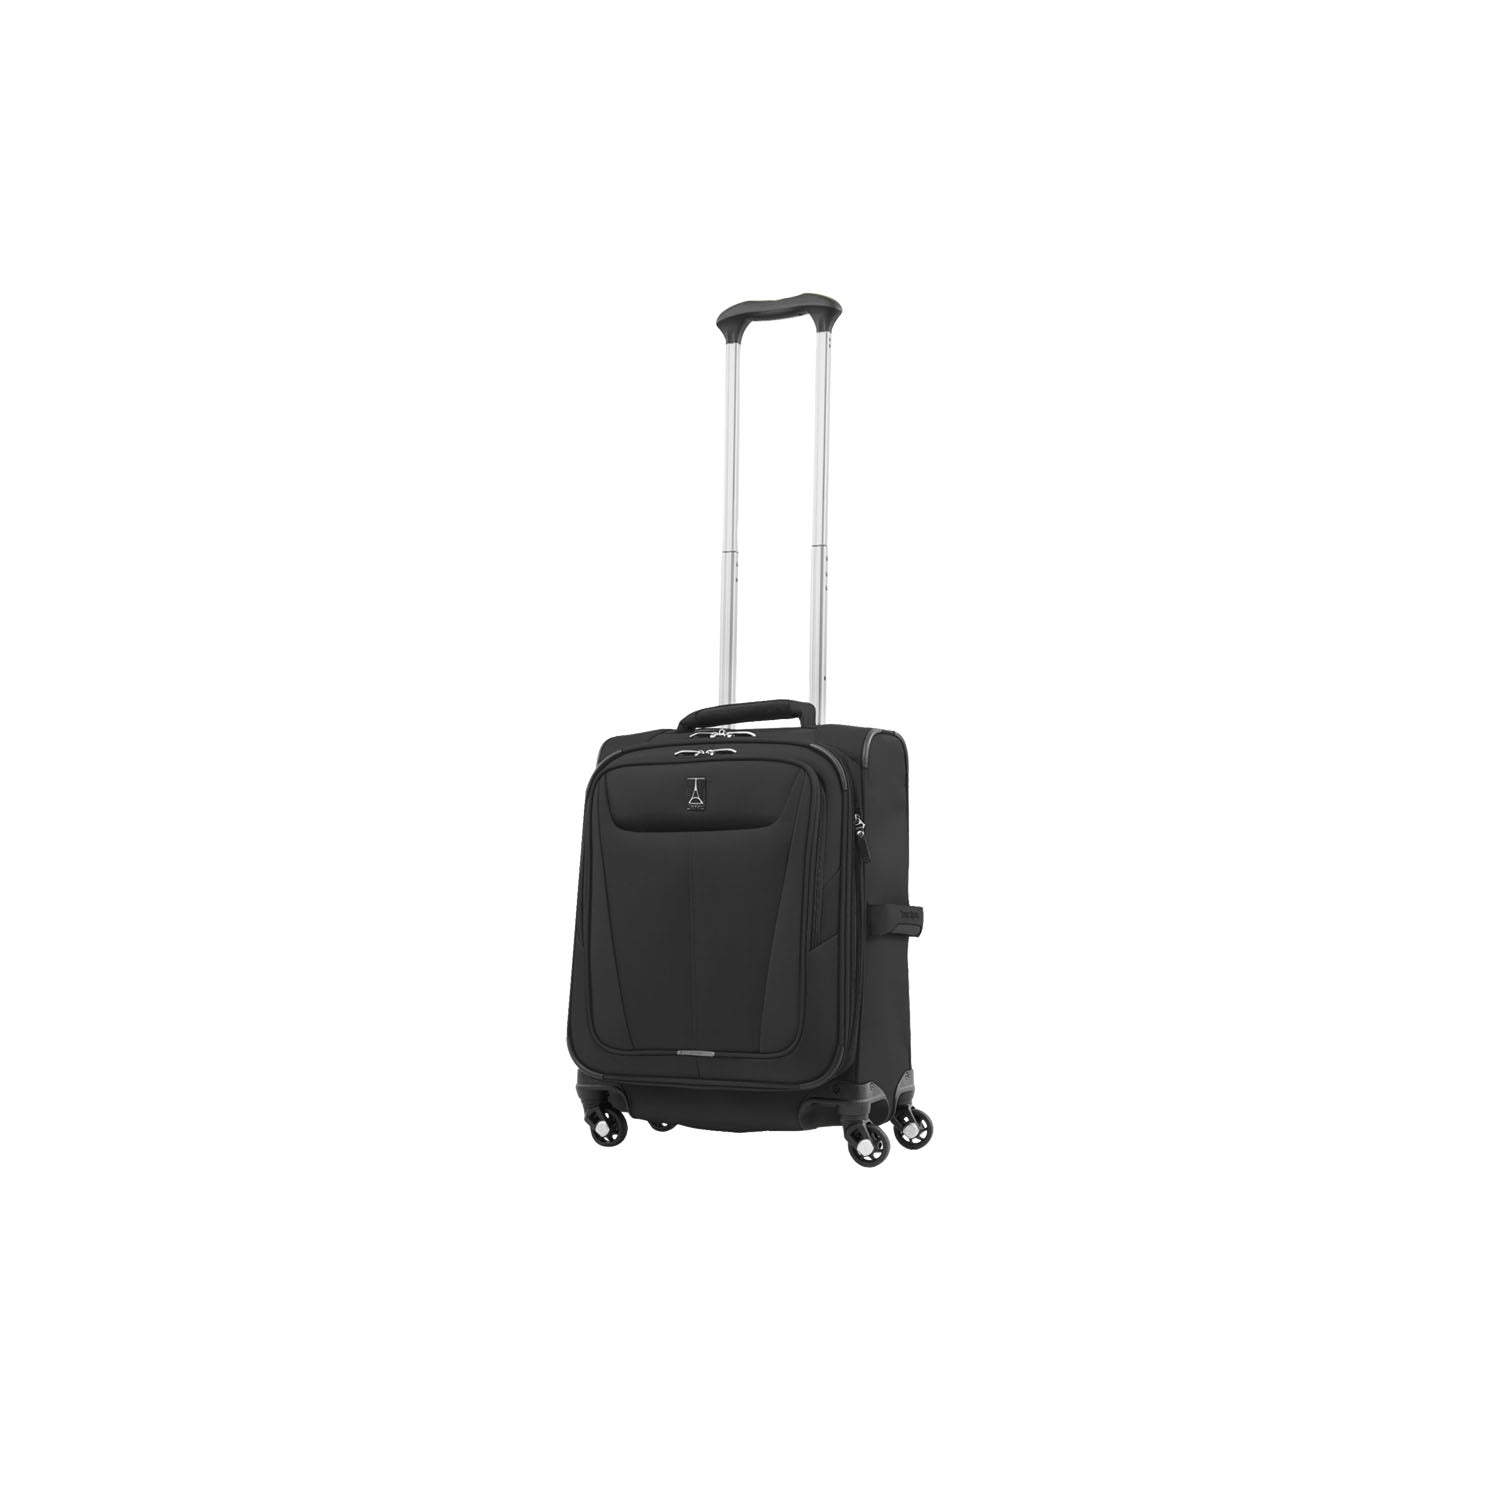 Maxlite® 5 55cm Slim Expandable Carry-On Spinner